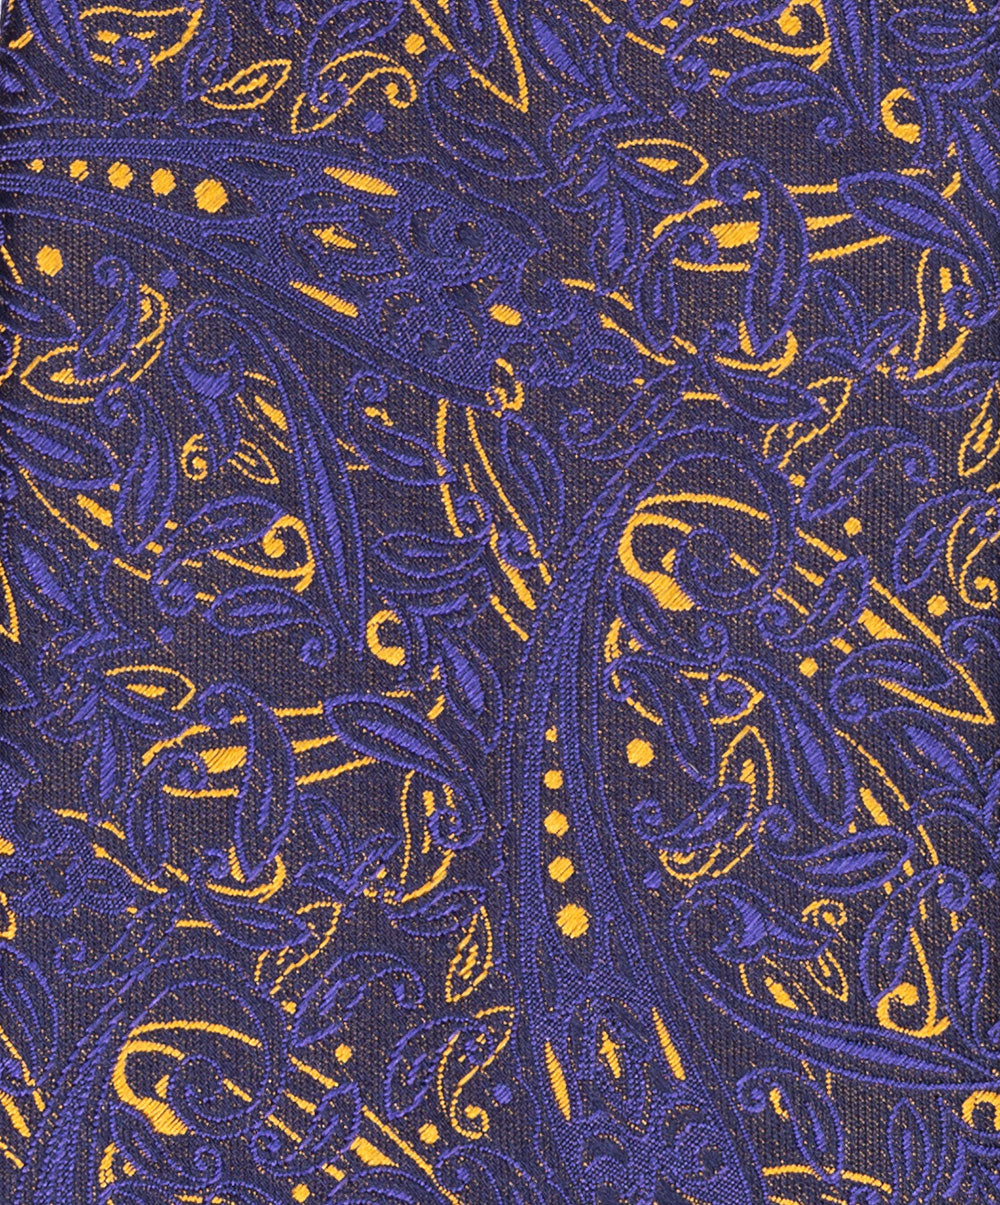 8.0cm Navy/Gold Varied Paisley Tie